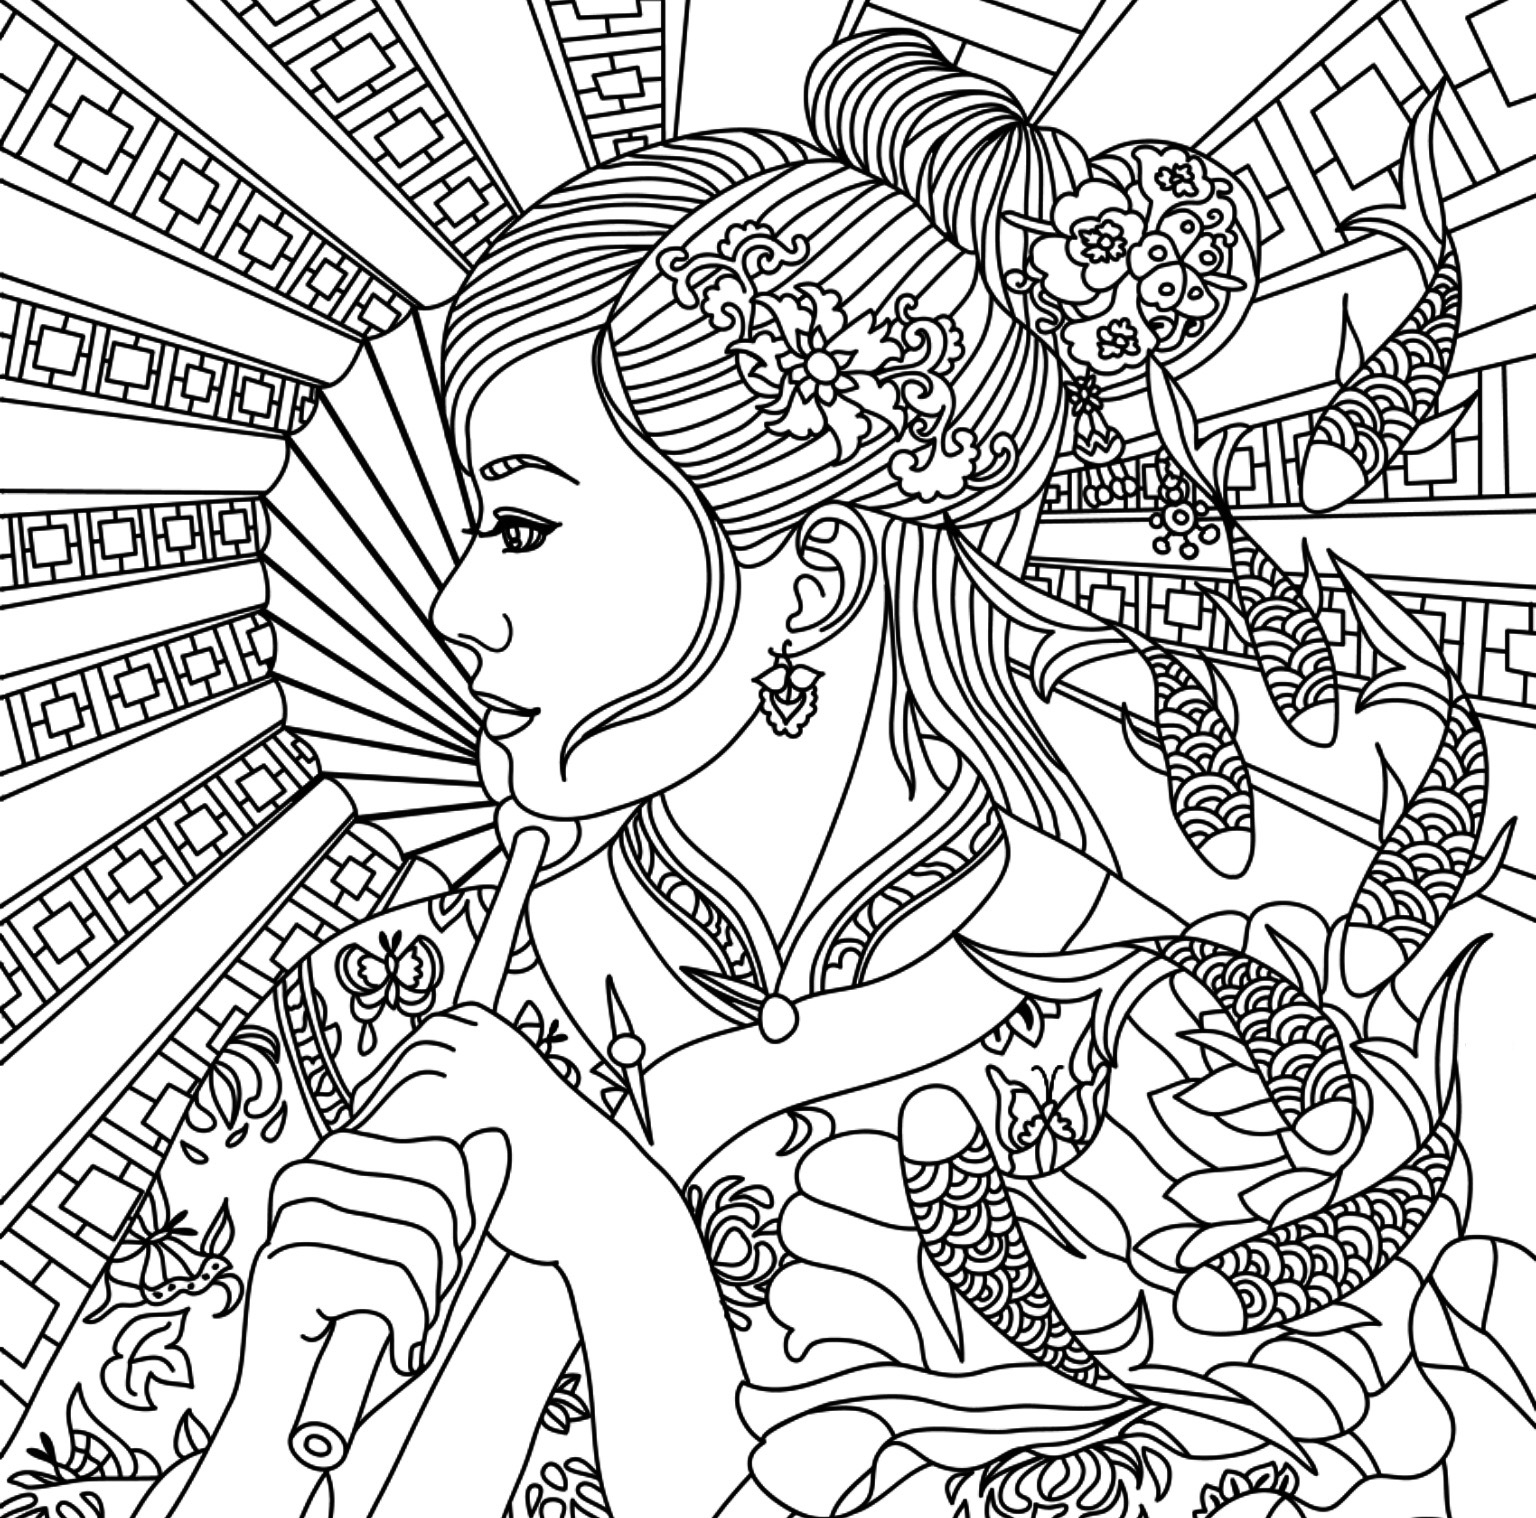 full size coloring sheets full size coloring pages for adults at getcoloringscom full coloring sheets size